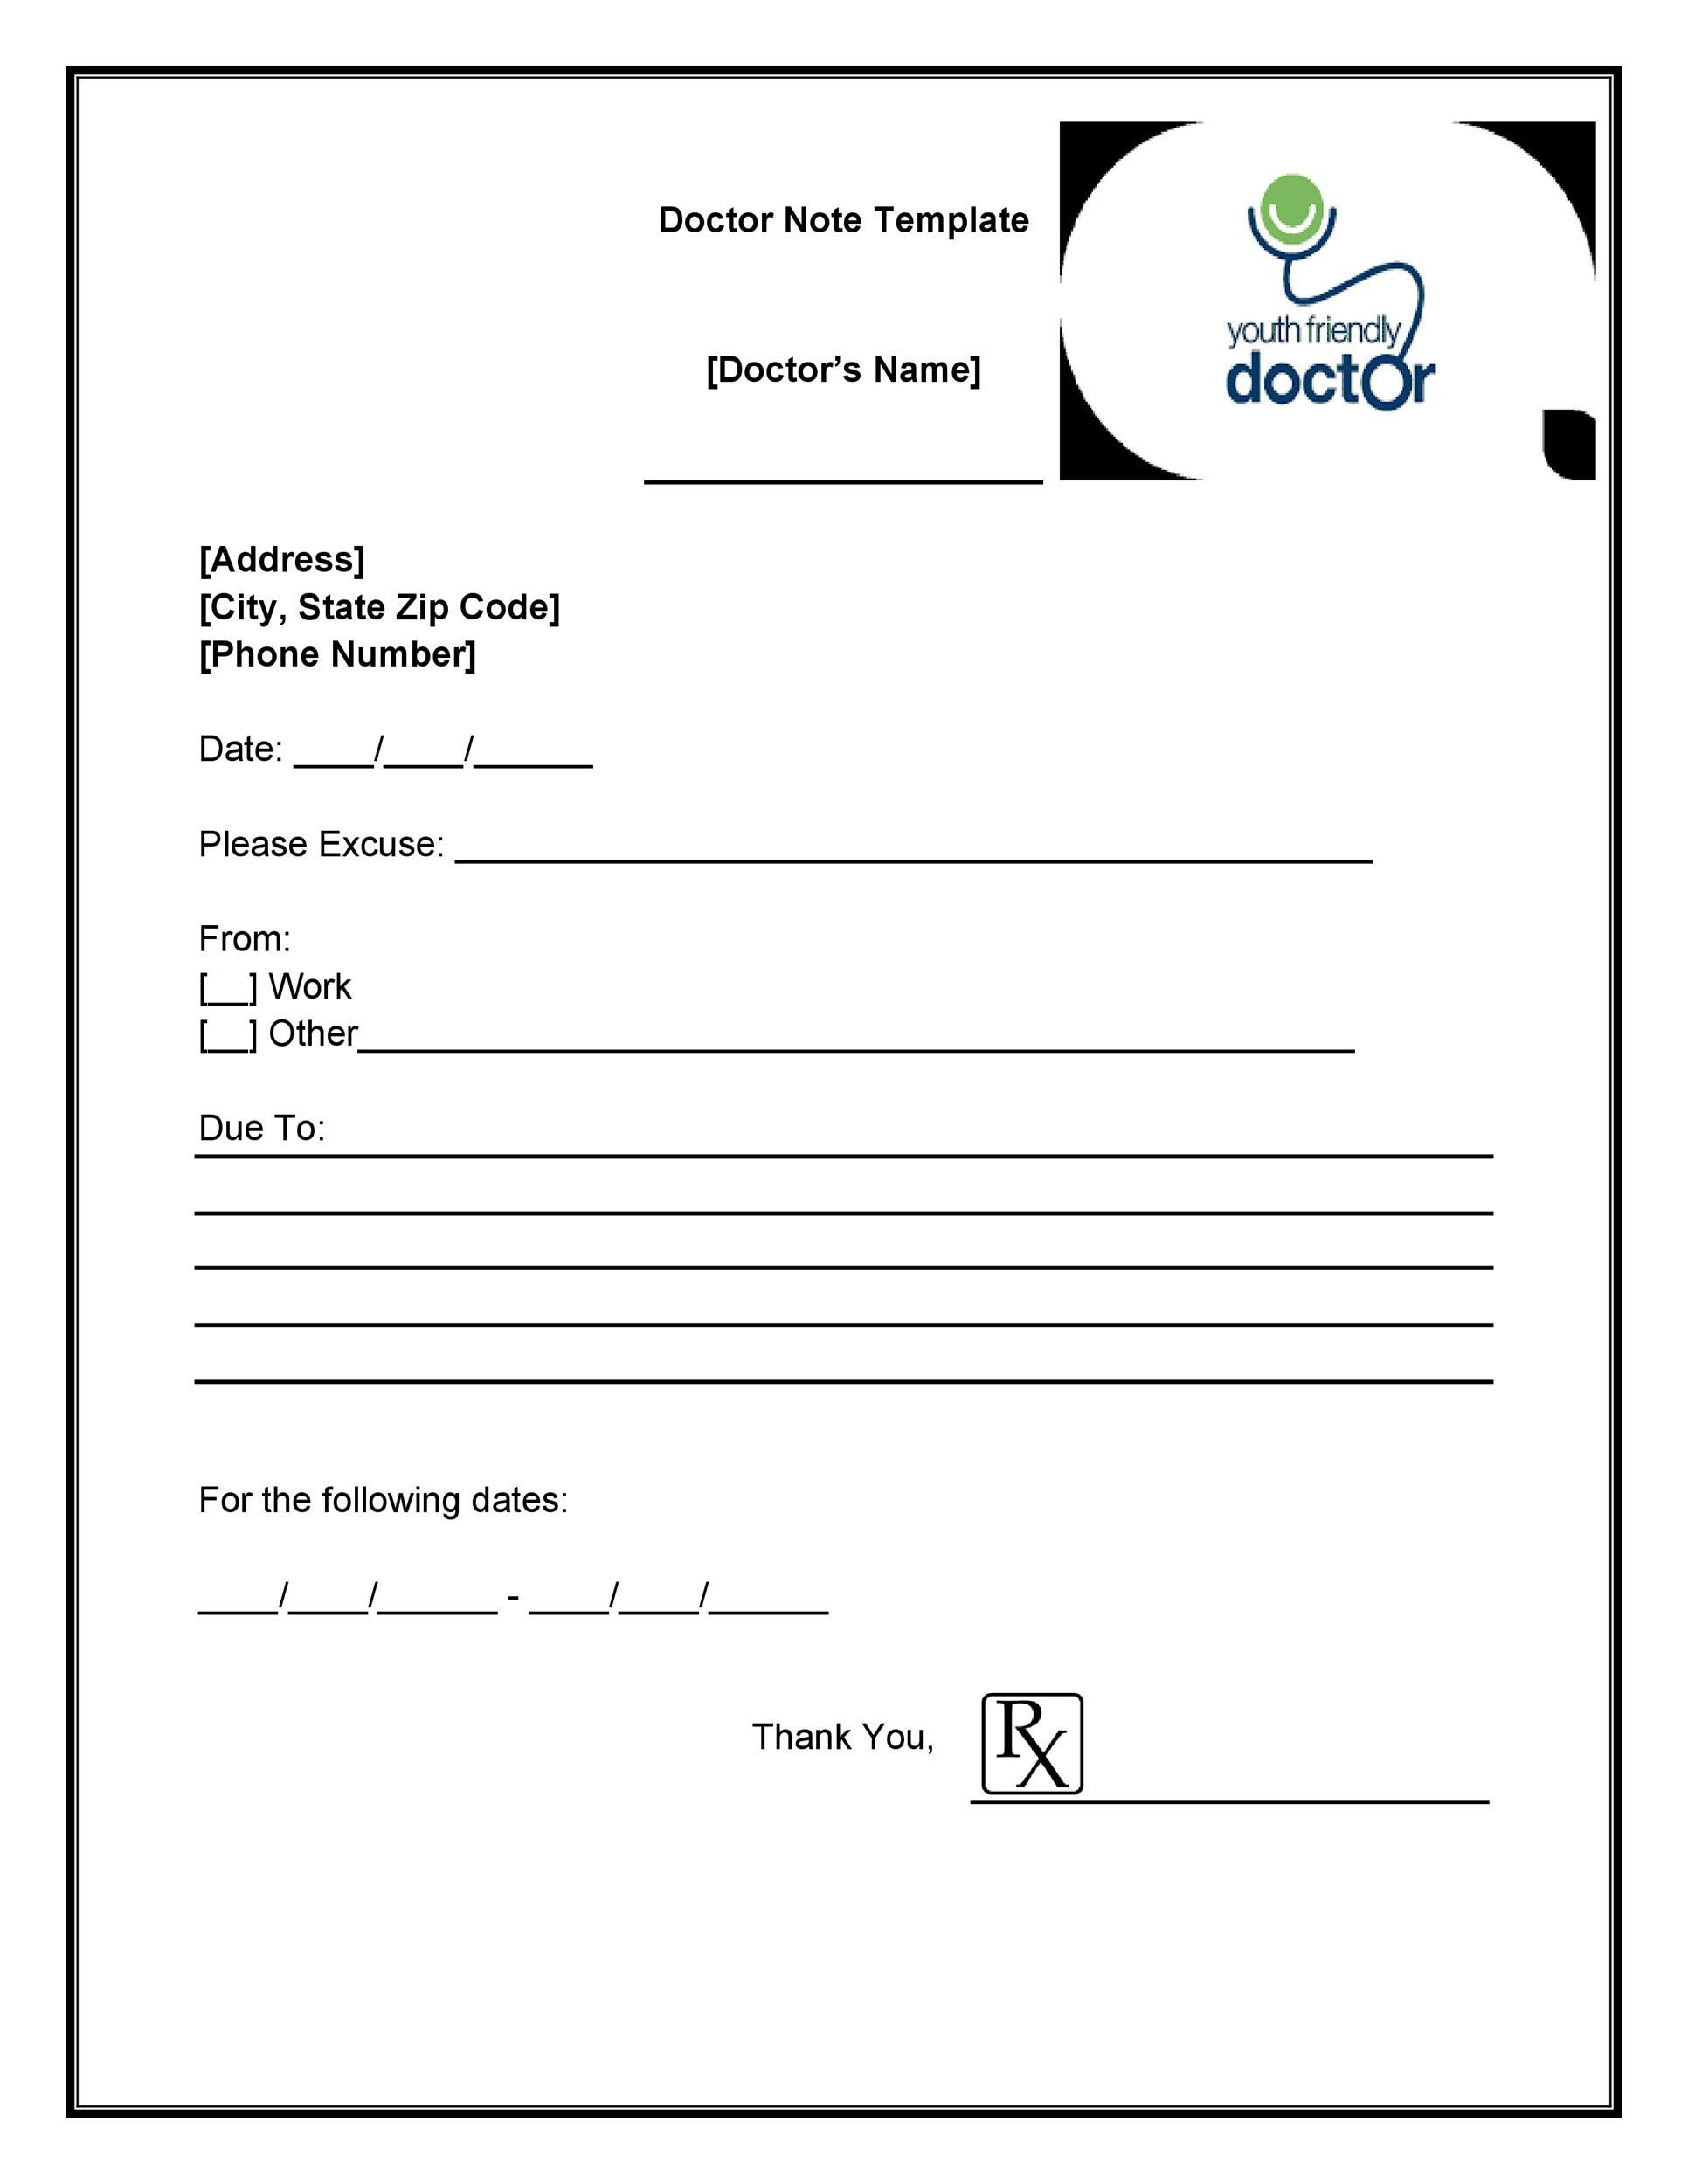 004 Shocking Doctor Excuse Template For Work Design  Missing NoteFull